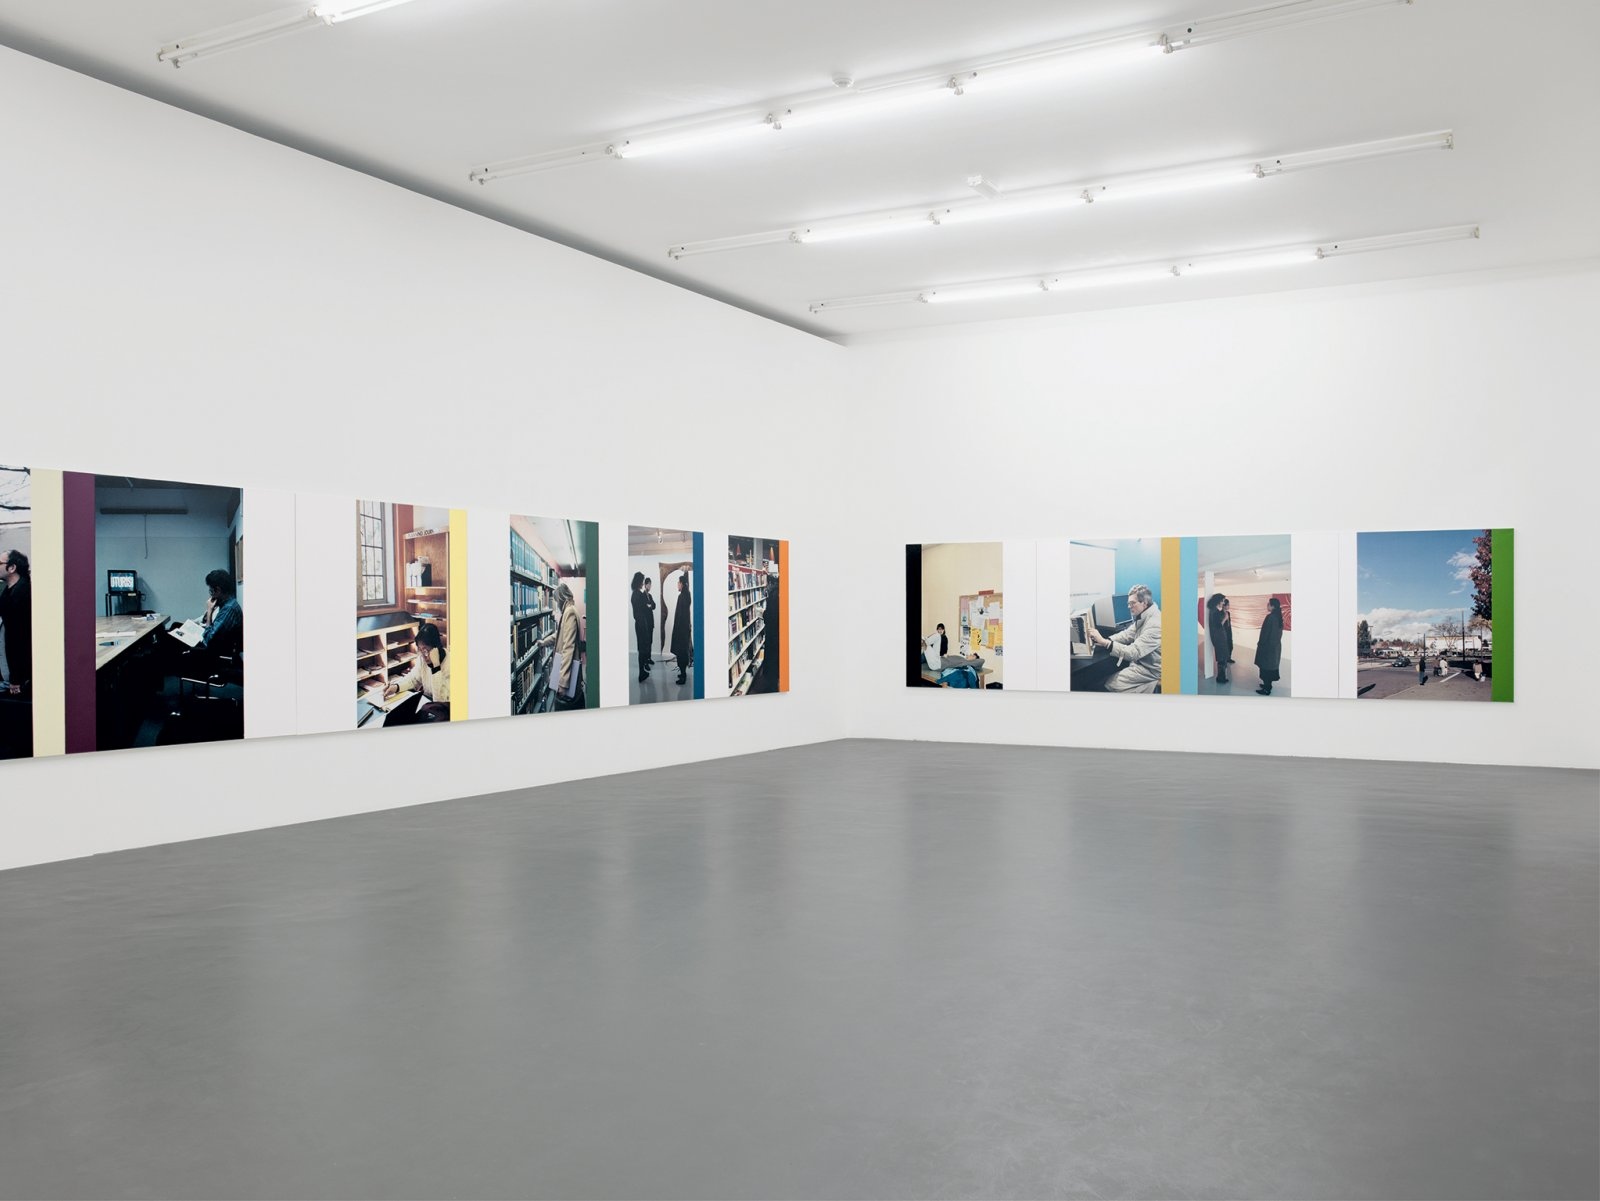 ​Ian Wallace, ​The Idea of the University I–XVI​, 1990, photolaminate with acrylic on canvas, each 60 x 60 in. (152 x 152 cm). Installation view, ​A Literature of Images​, Witte de With, Rotterdam, 2008 by Ian Wallace